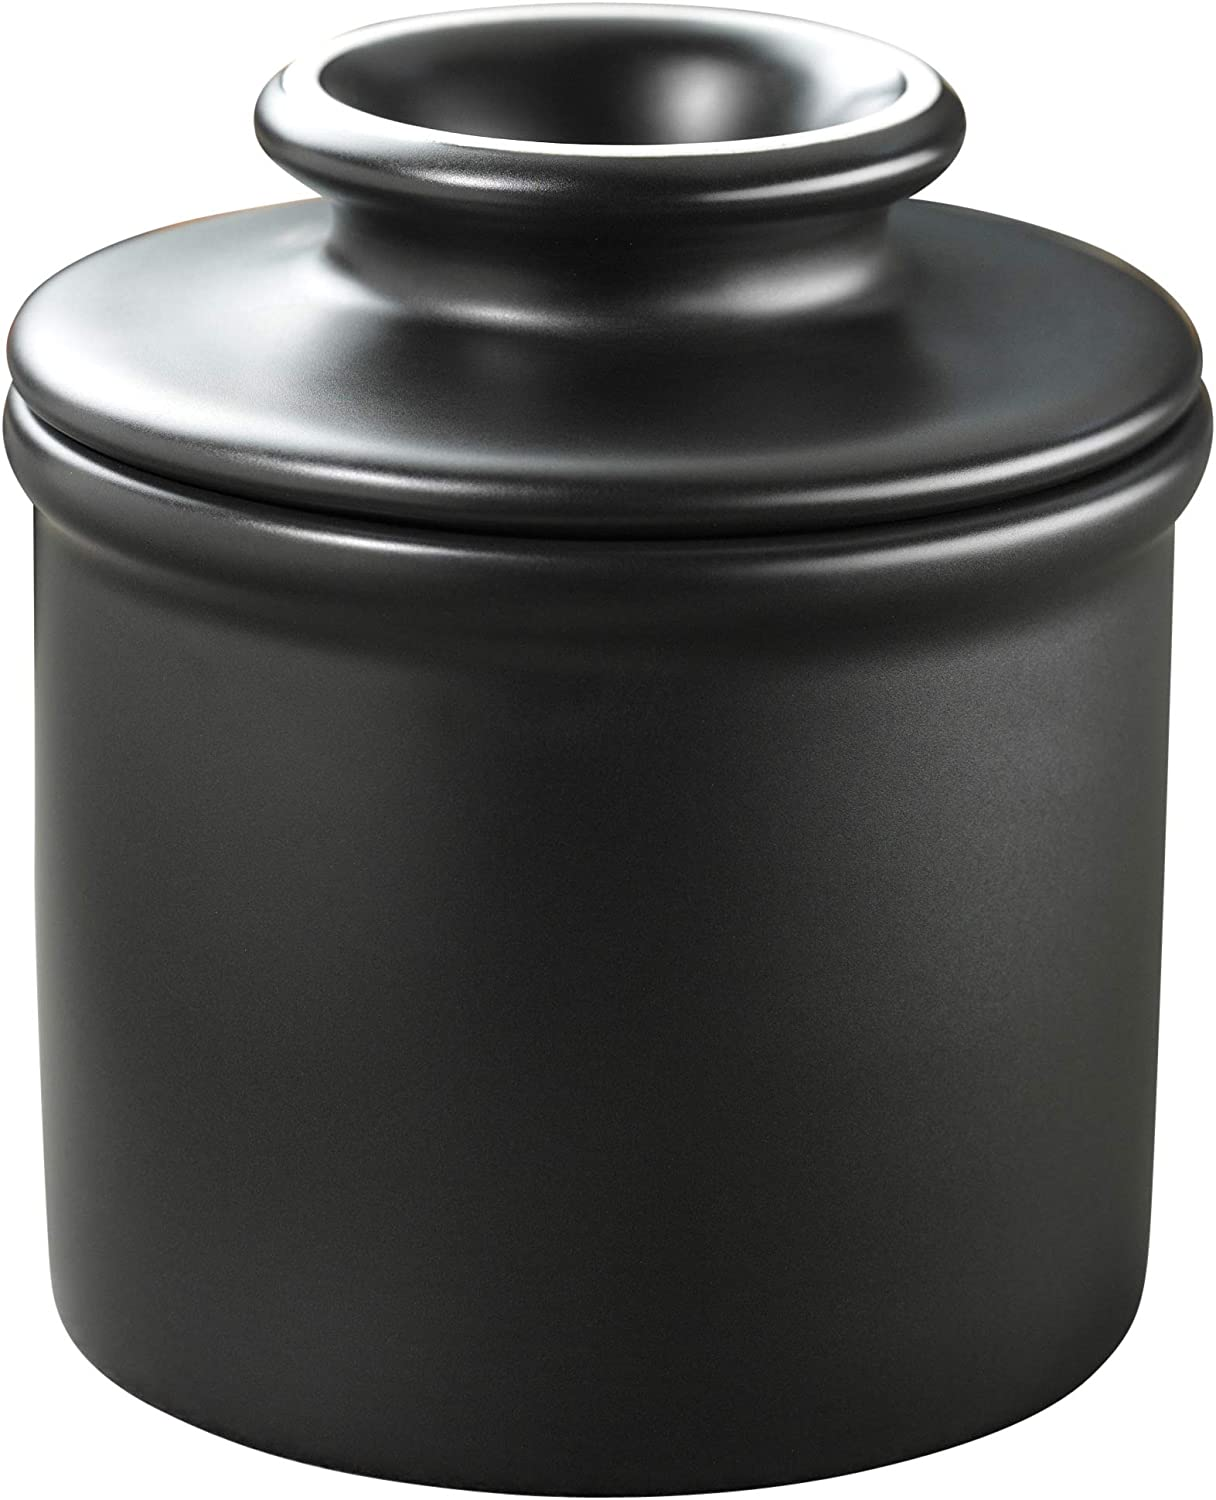 Butter Bell - The Original Butter Bell Crock by L. Tremain, French Ceramic Butter Dish, Classic, Ebony